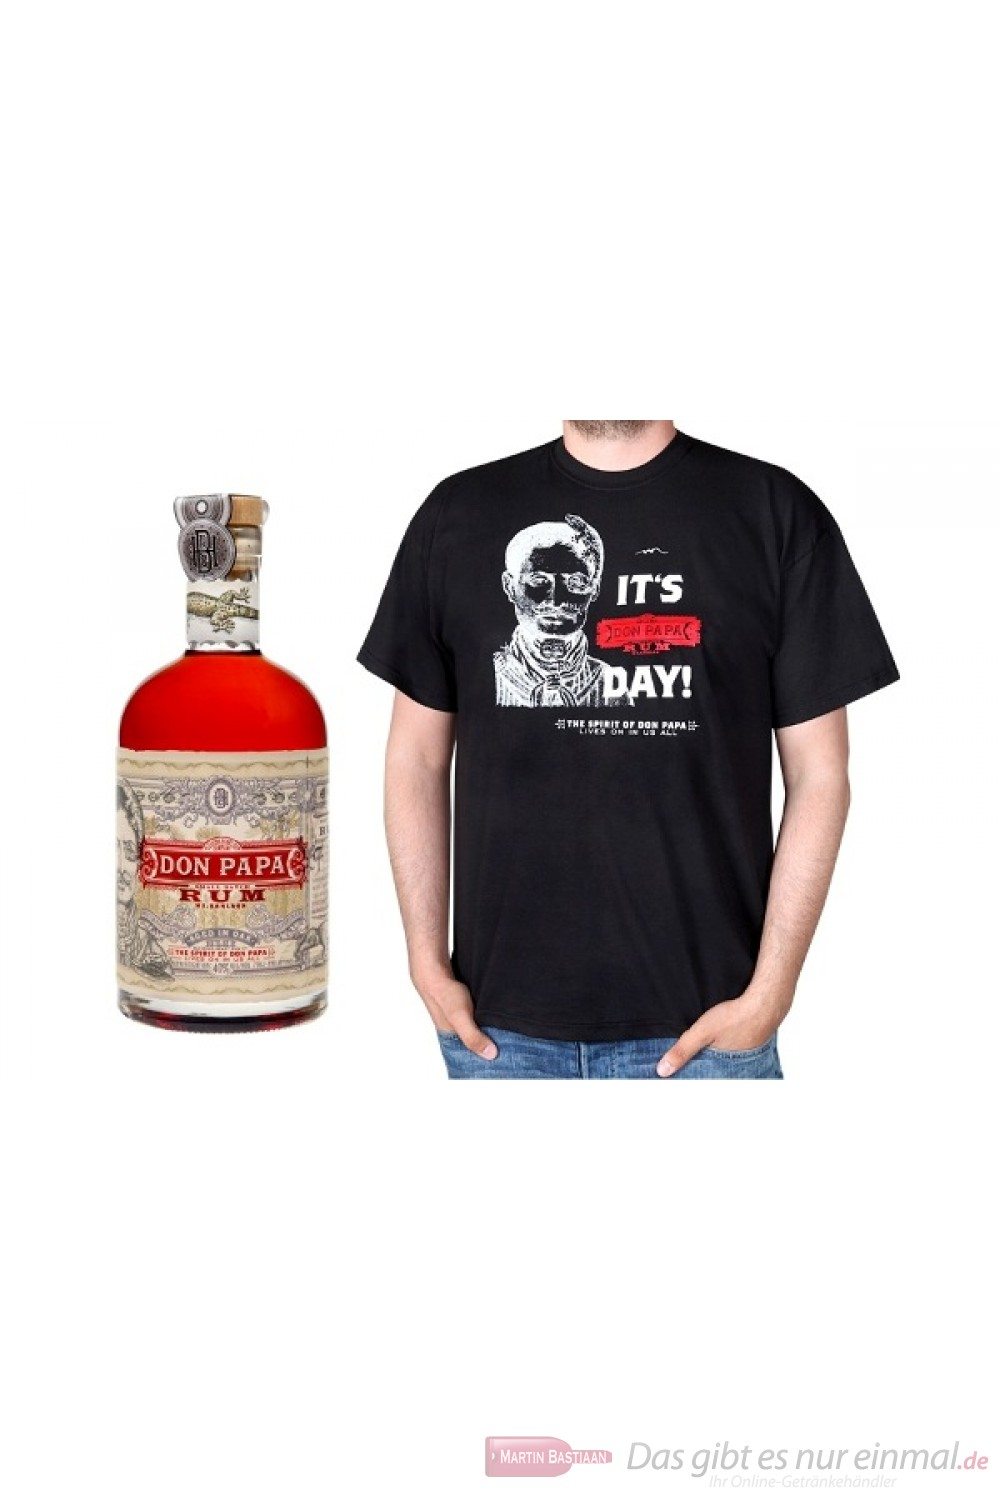 Don Papa Small Batch Rum + T-Shirt